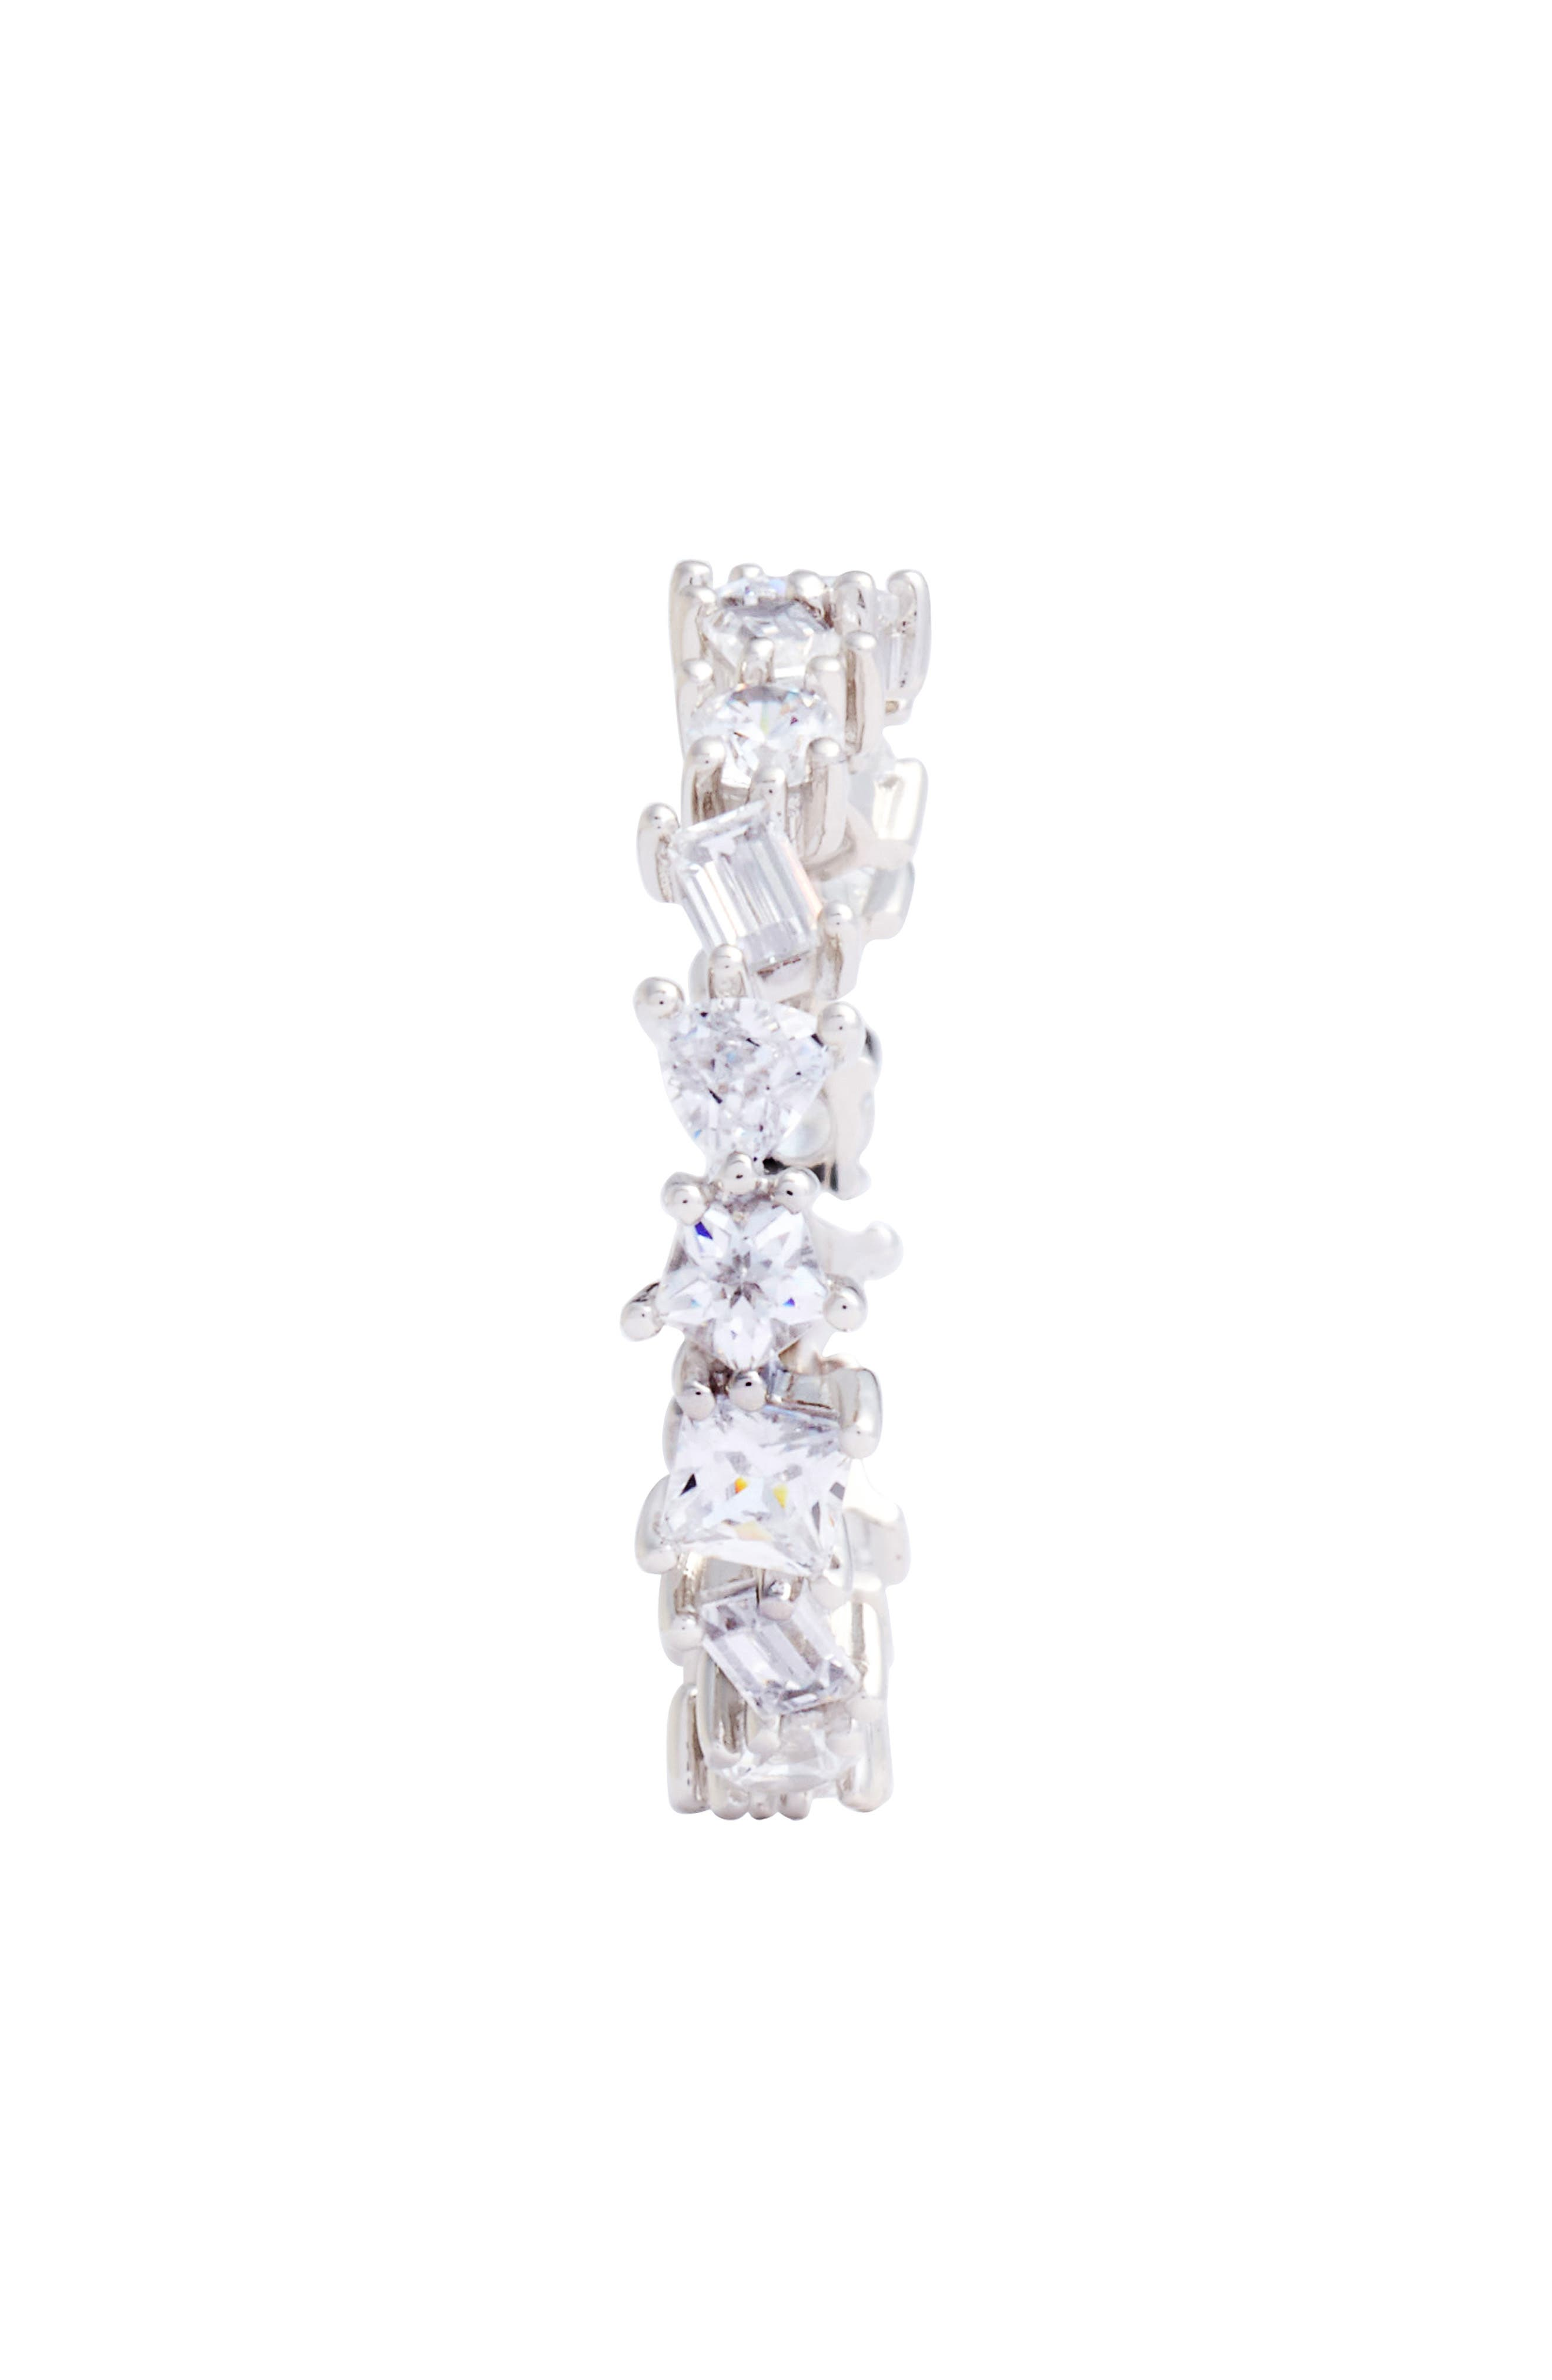 Cubic Zirconia Eternity Ring,                             Alternate thumbnail 2, color,                             040